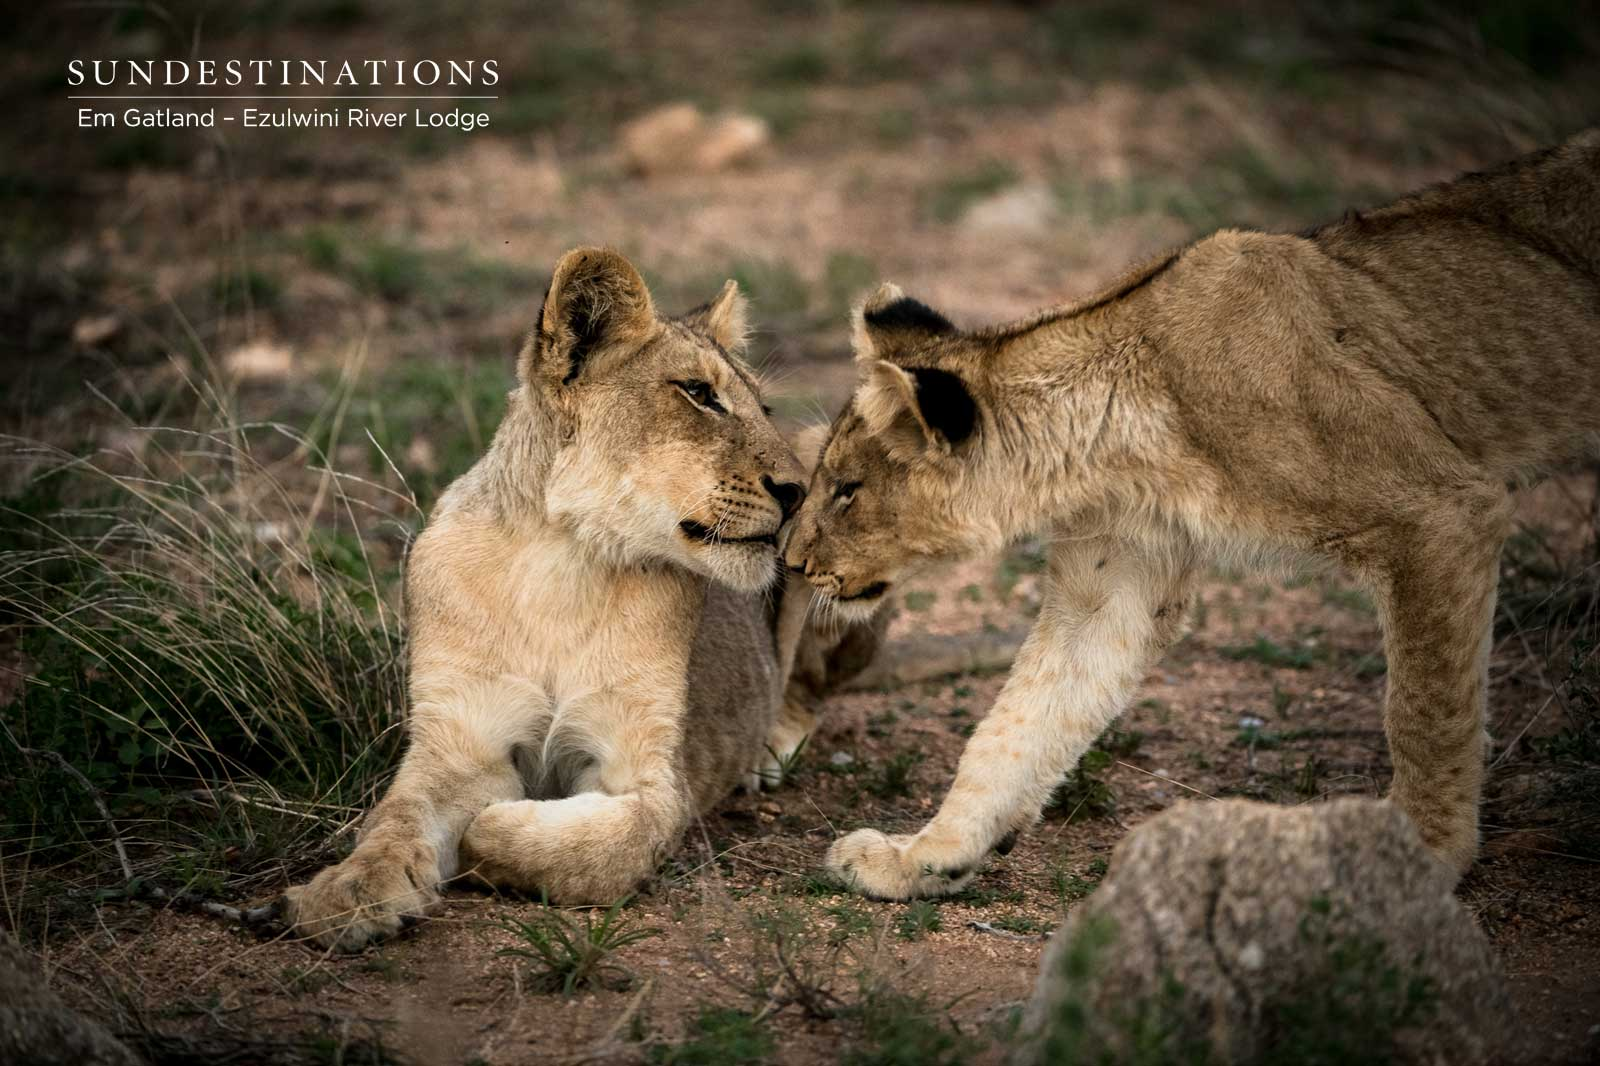 Two Lion Cubs at Ezulwini